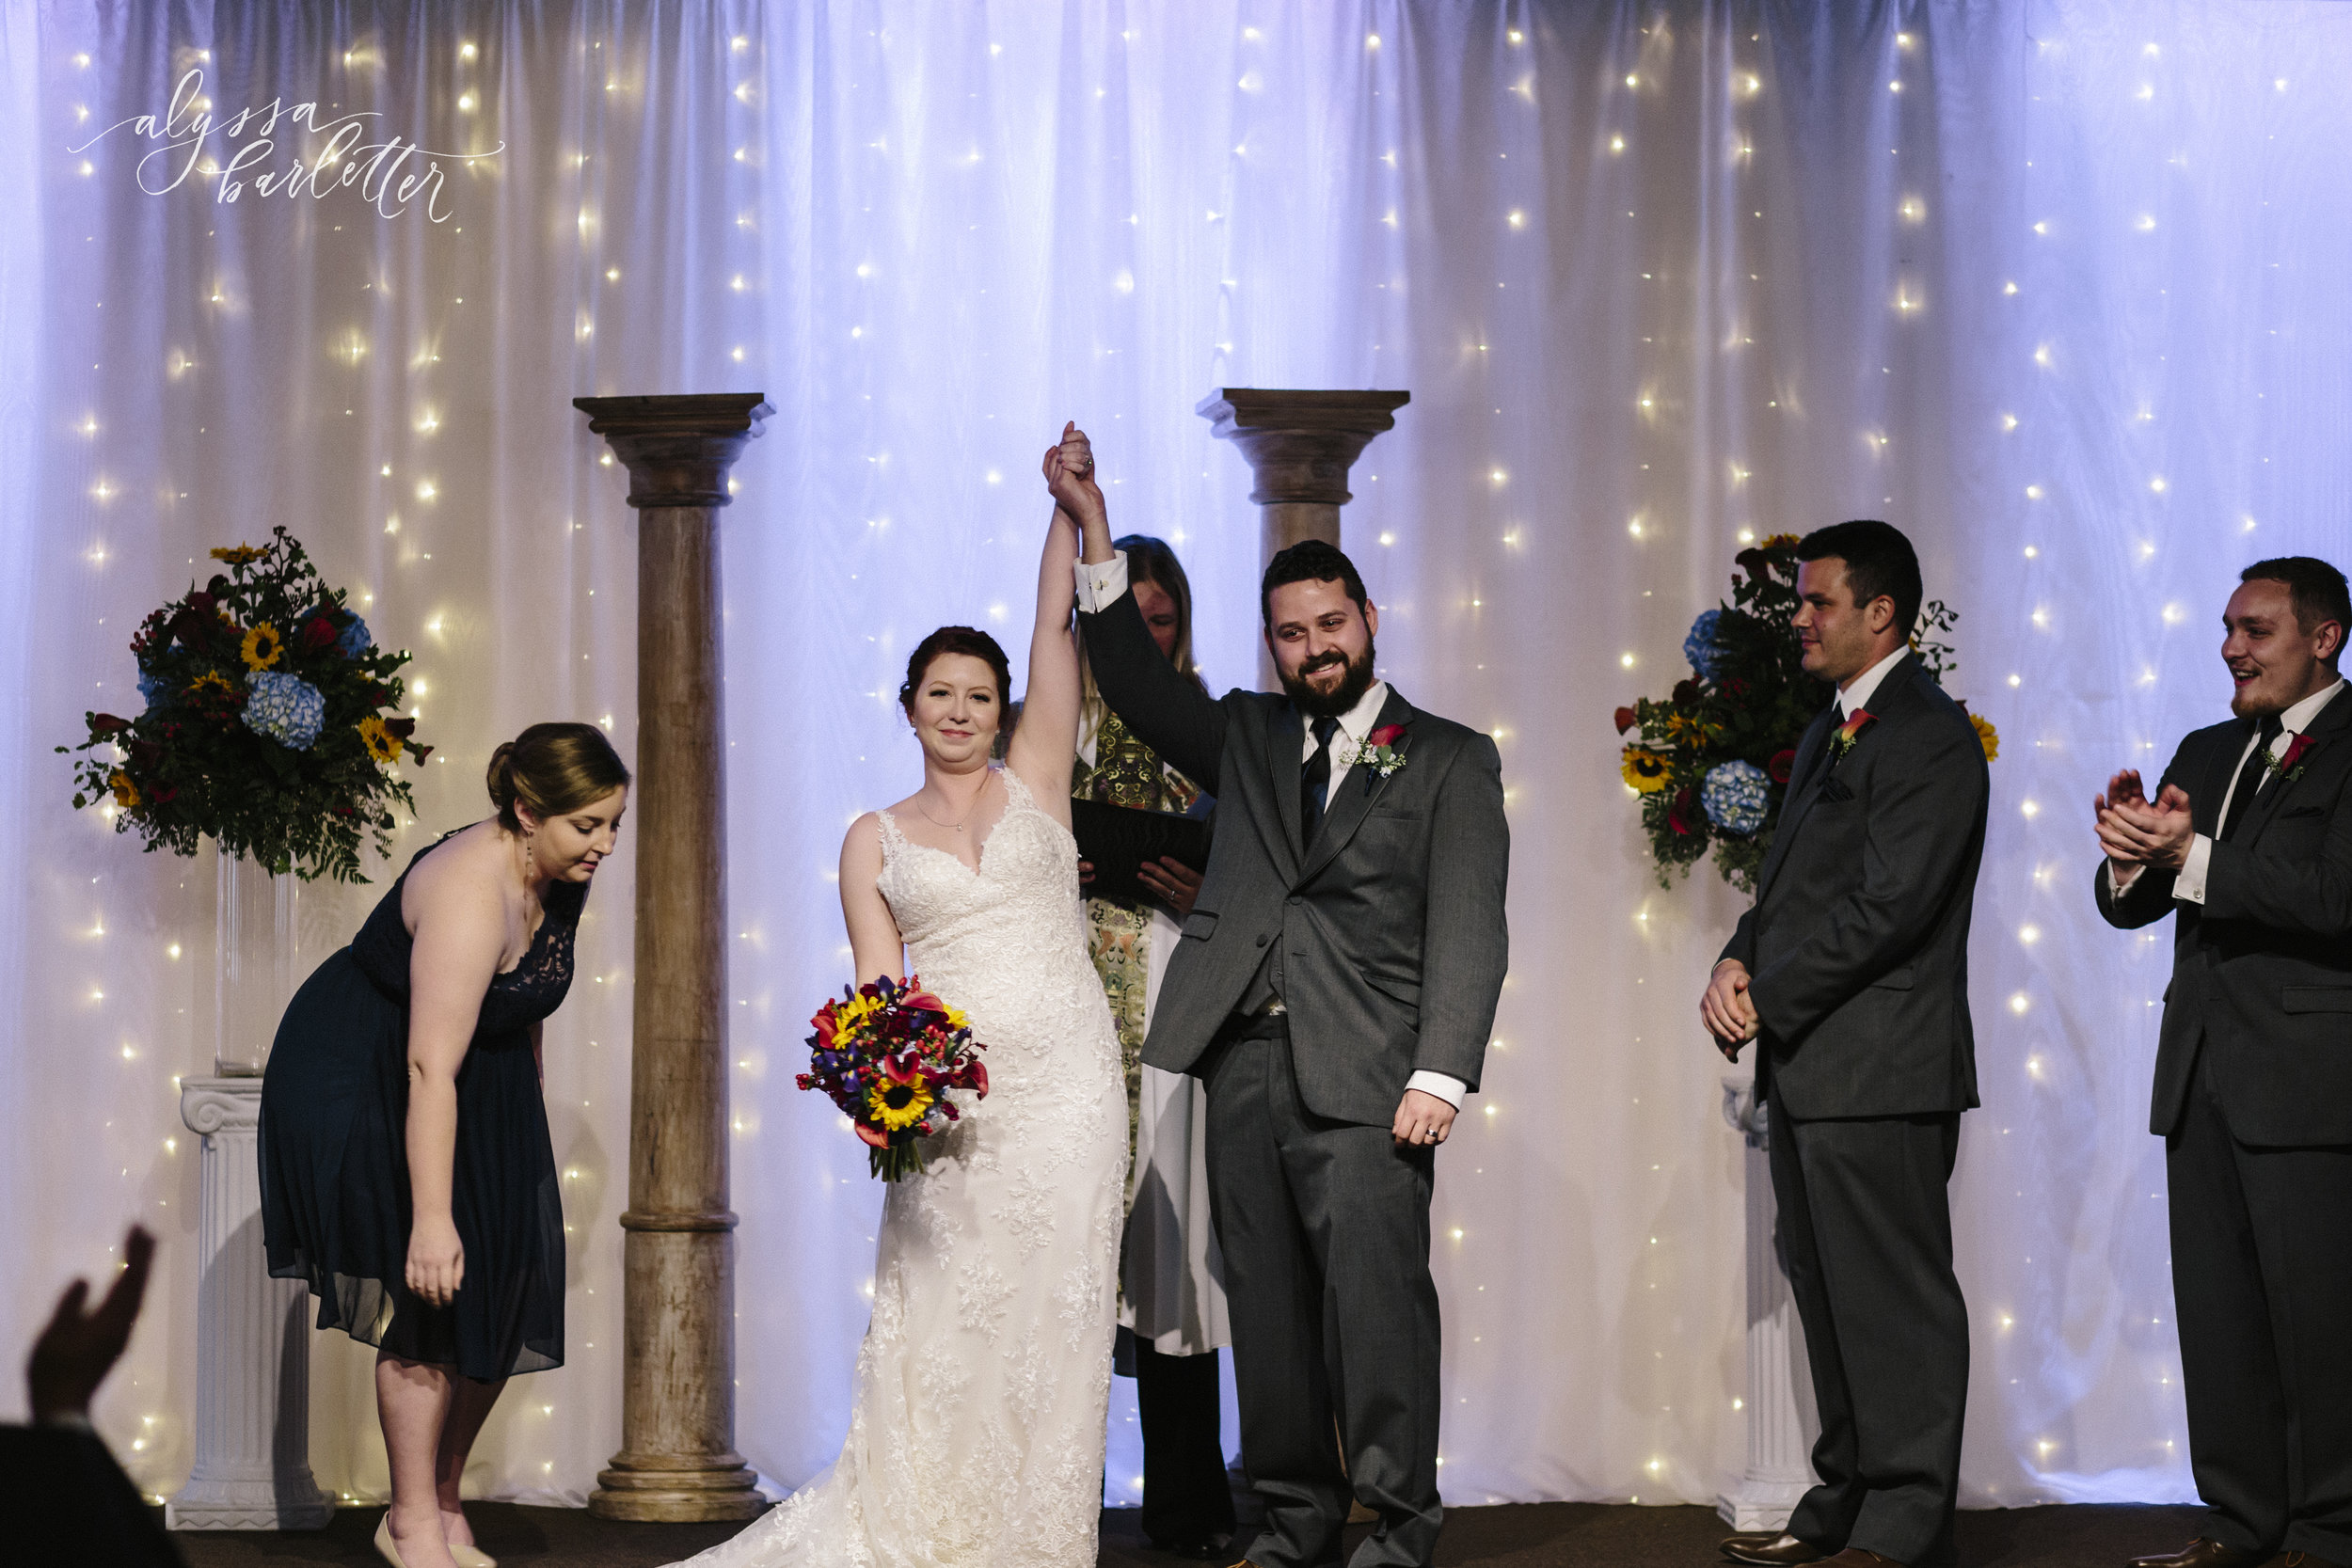 alyssa barletter photography wedding liberty missouri hipster quirky alex and shawn-1-20.jpg